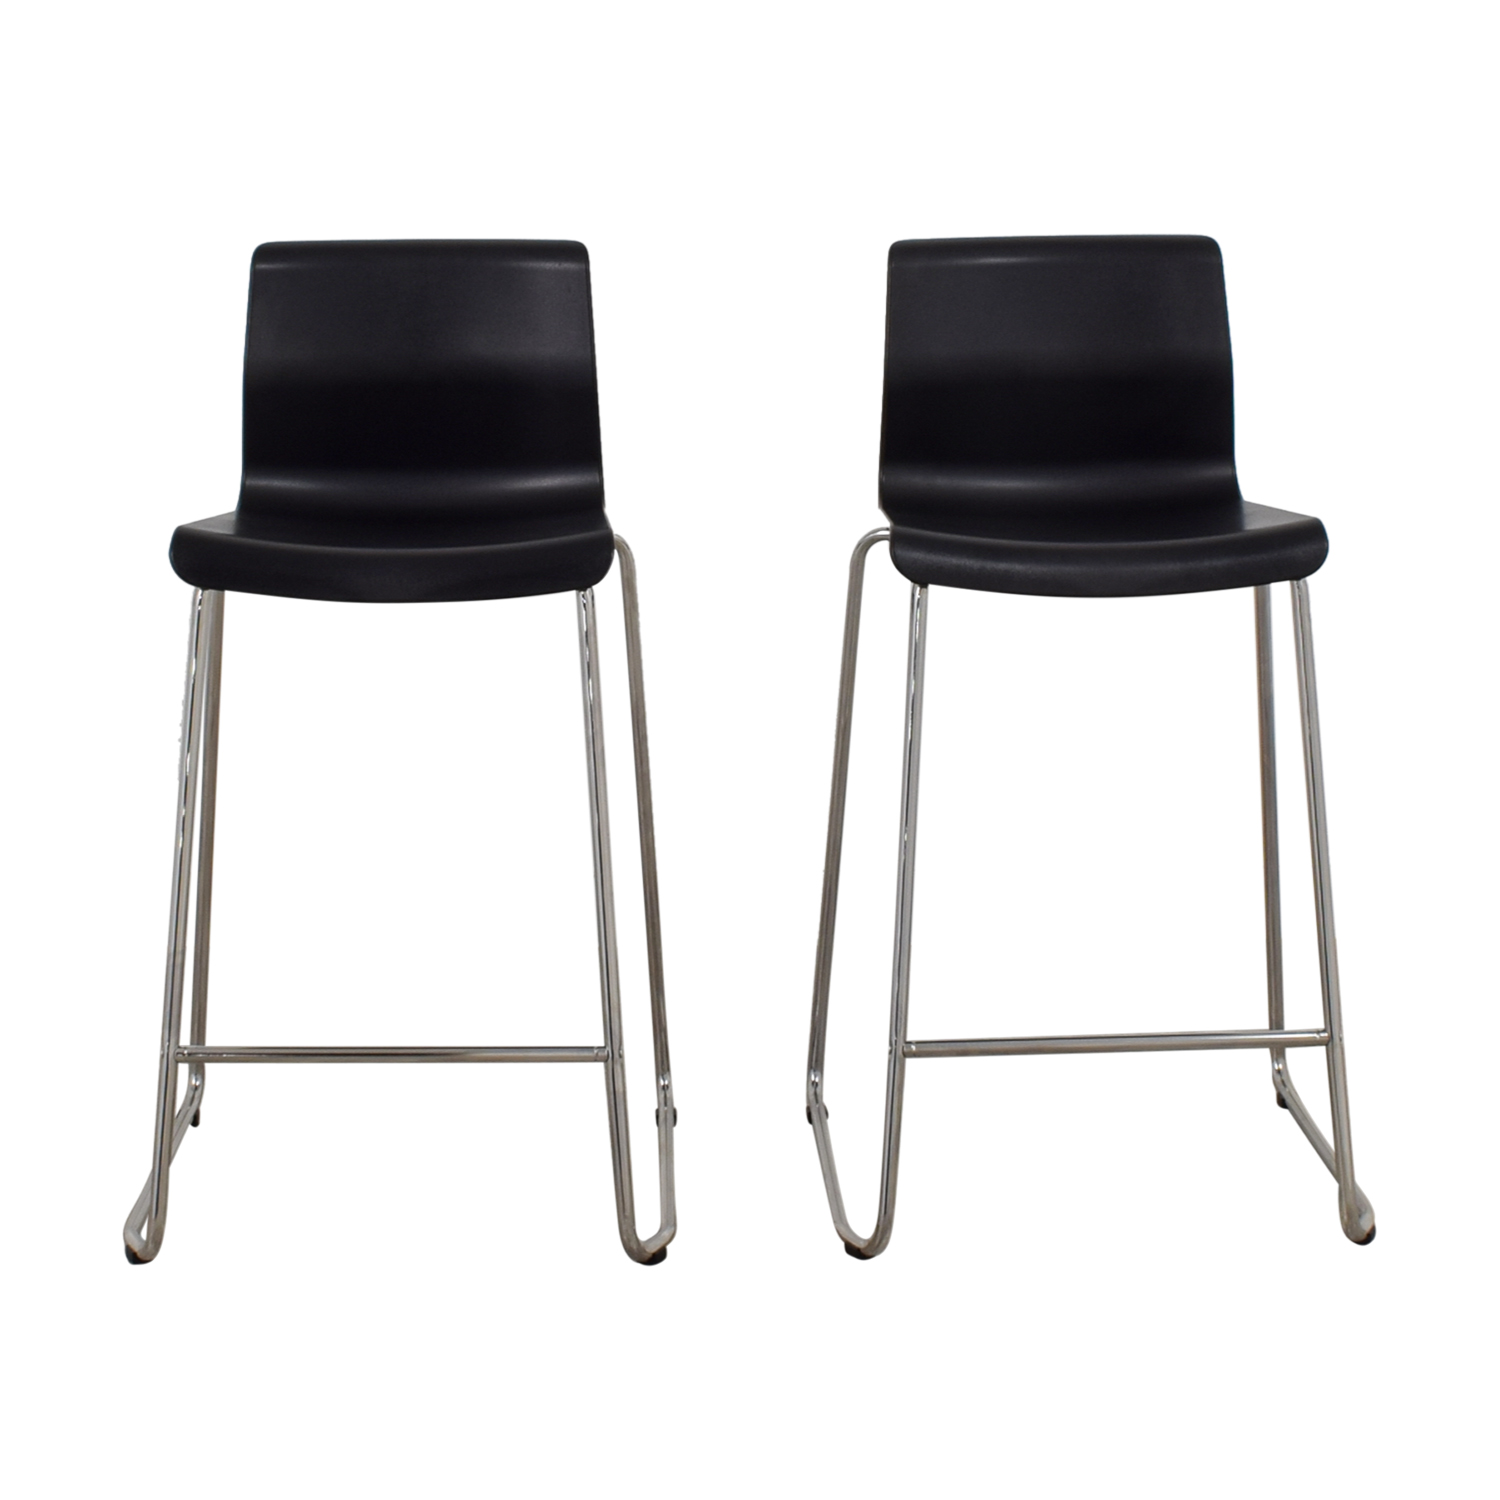 81 off ikea ikea black and metal bar stools chairs